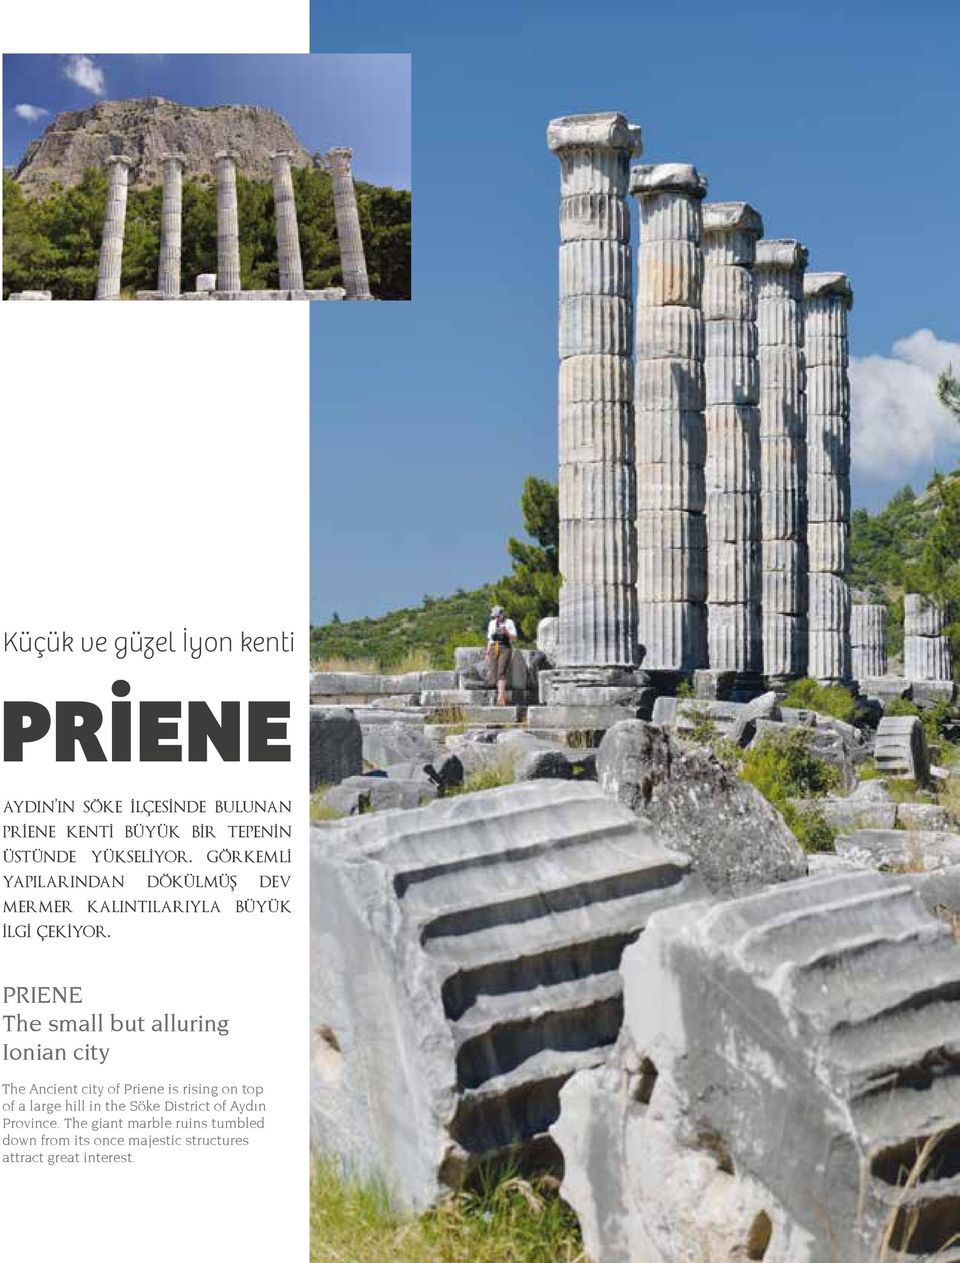 PRIENE The small but alluring Ionian city The Ancient city of Priene is rising on top of a large hill in